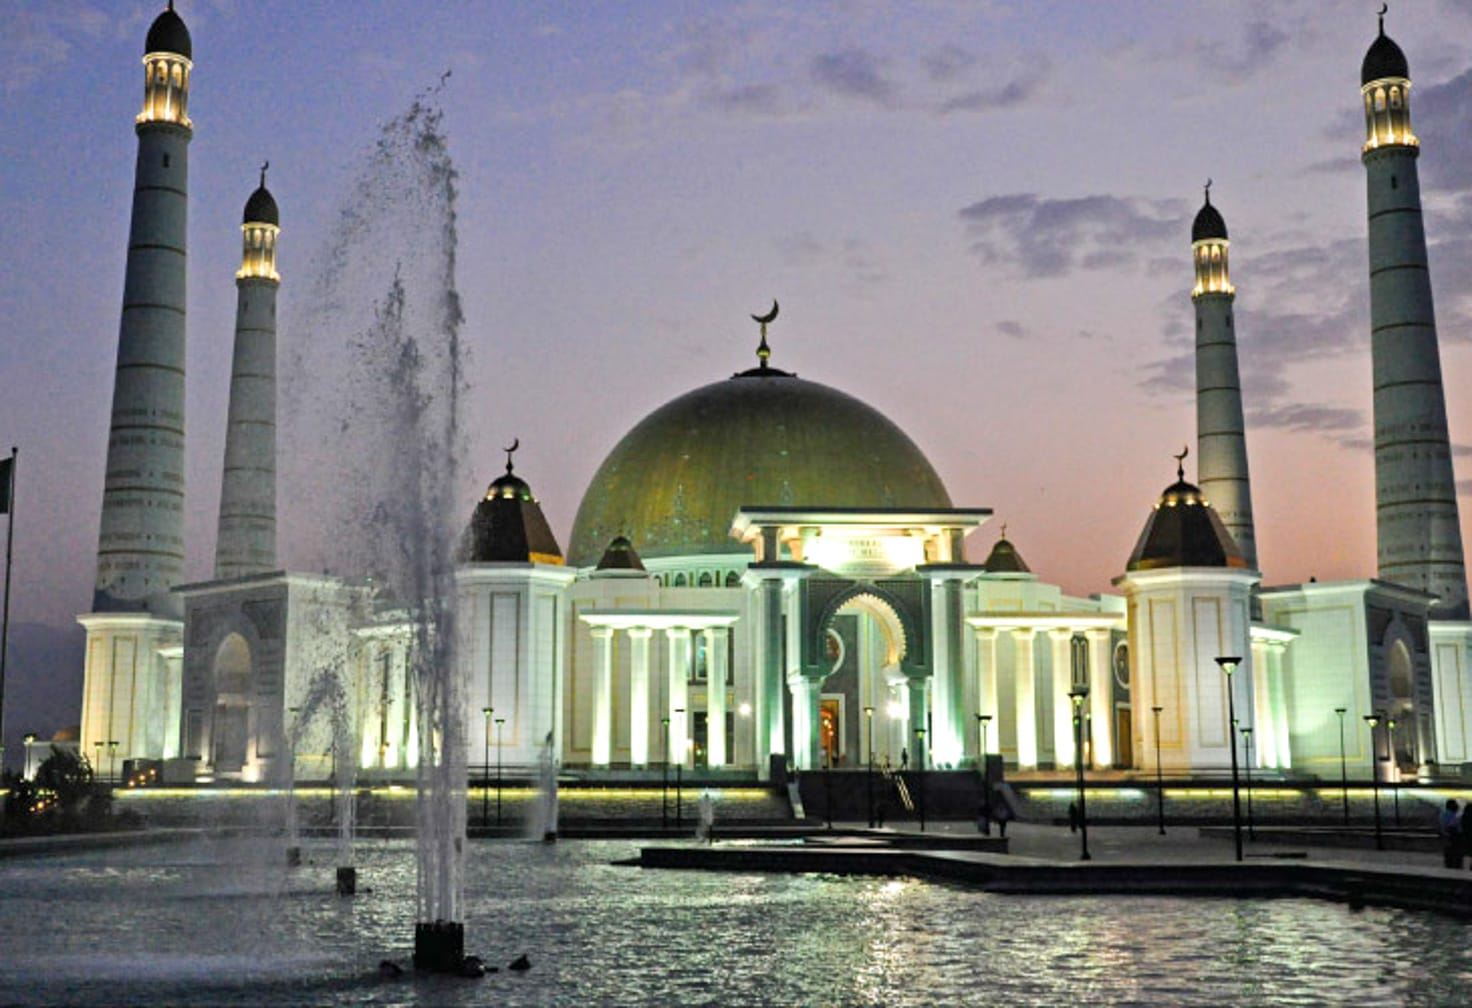 Ashgabat at night on the Republics of the Silk Road: Moscow to Almaty journey